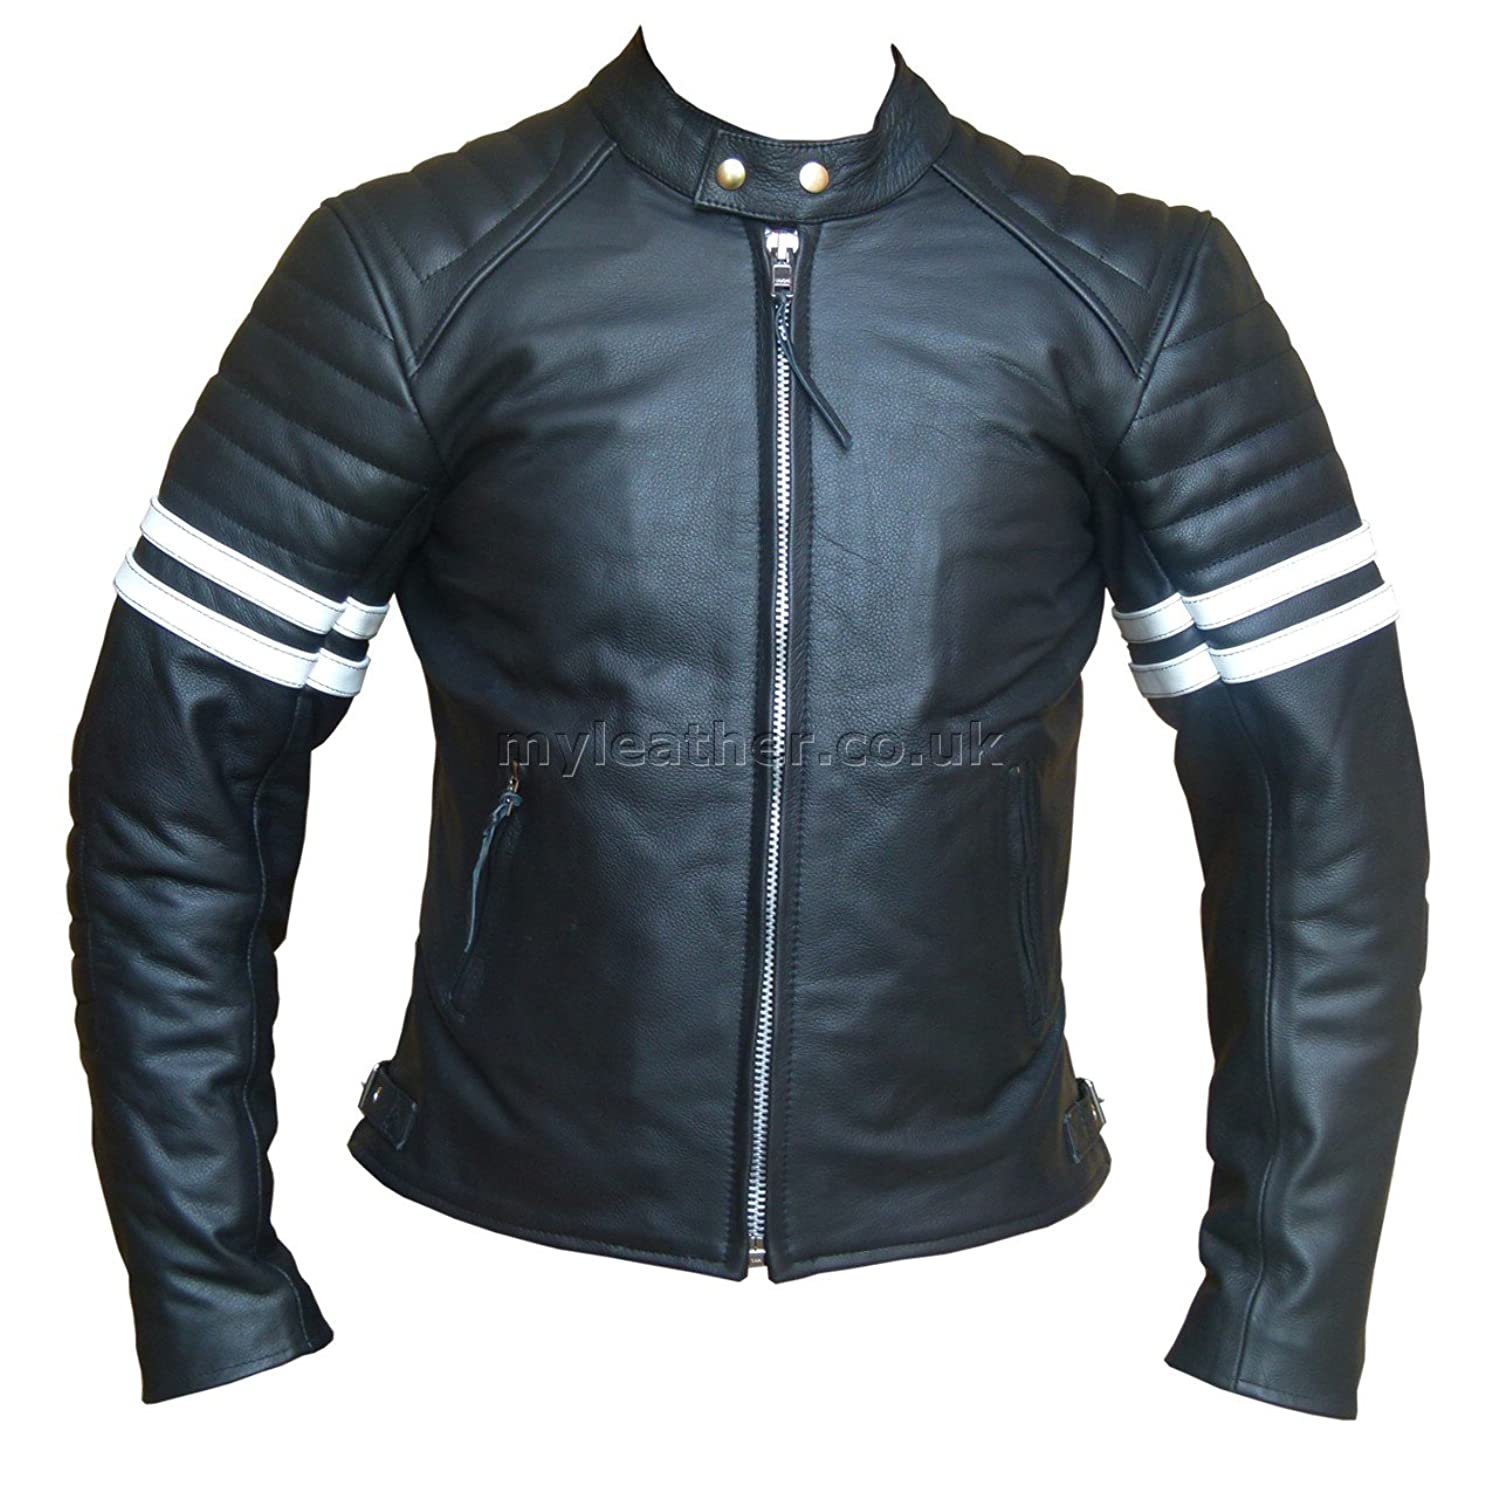 Fight Club 2 White Striped Cafe Racer Style Retro Leather Jacket